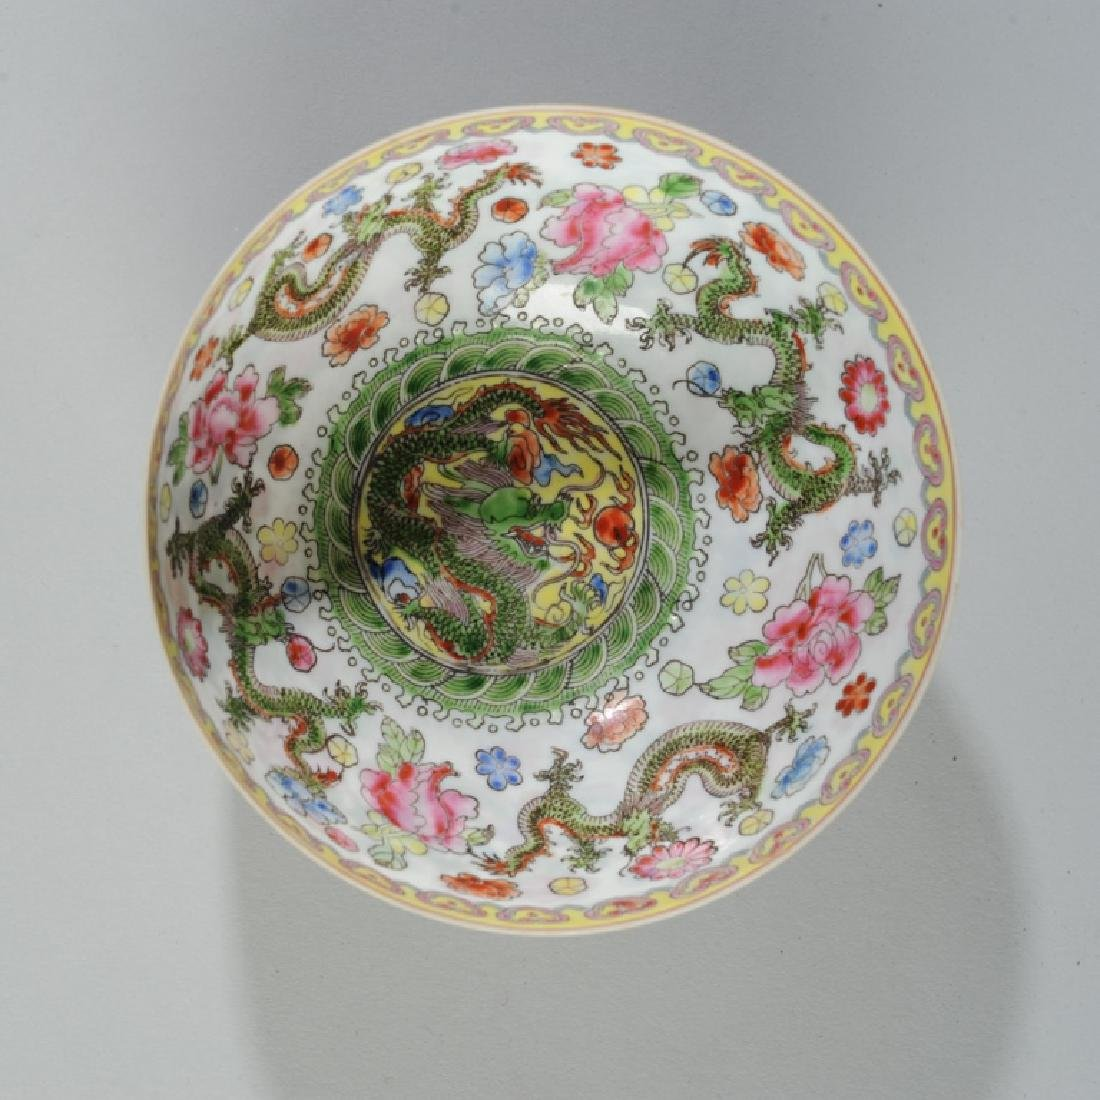 Chinese Eggshell Porcelain Dragon Bowl - 3